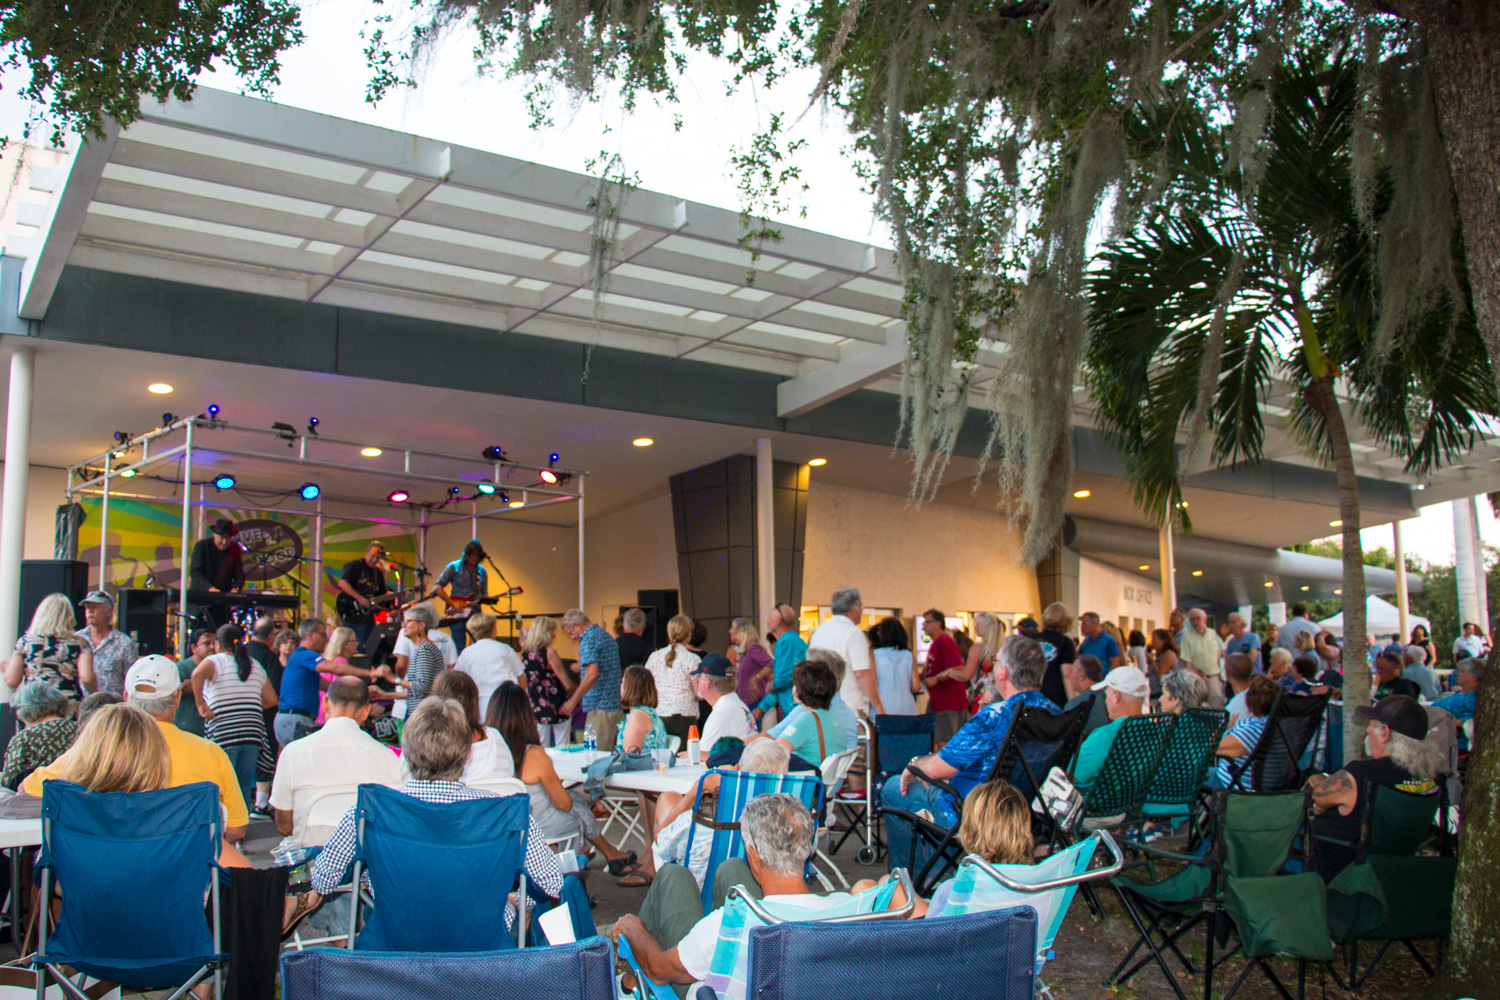 Live in the Loop - Our outdoor concert venue has tables and chairs for over 200 guests. The area also includes a walk-up window bar and grill.